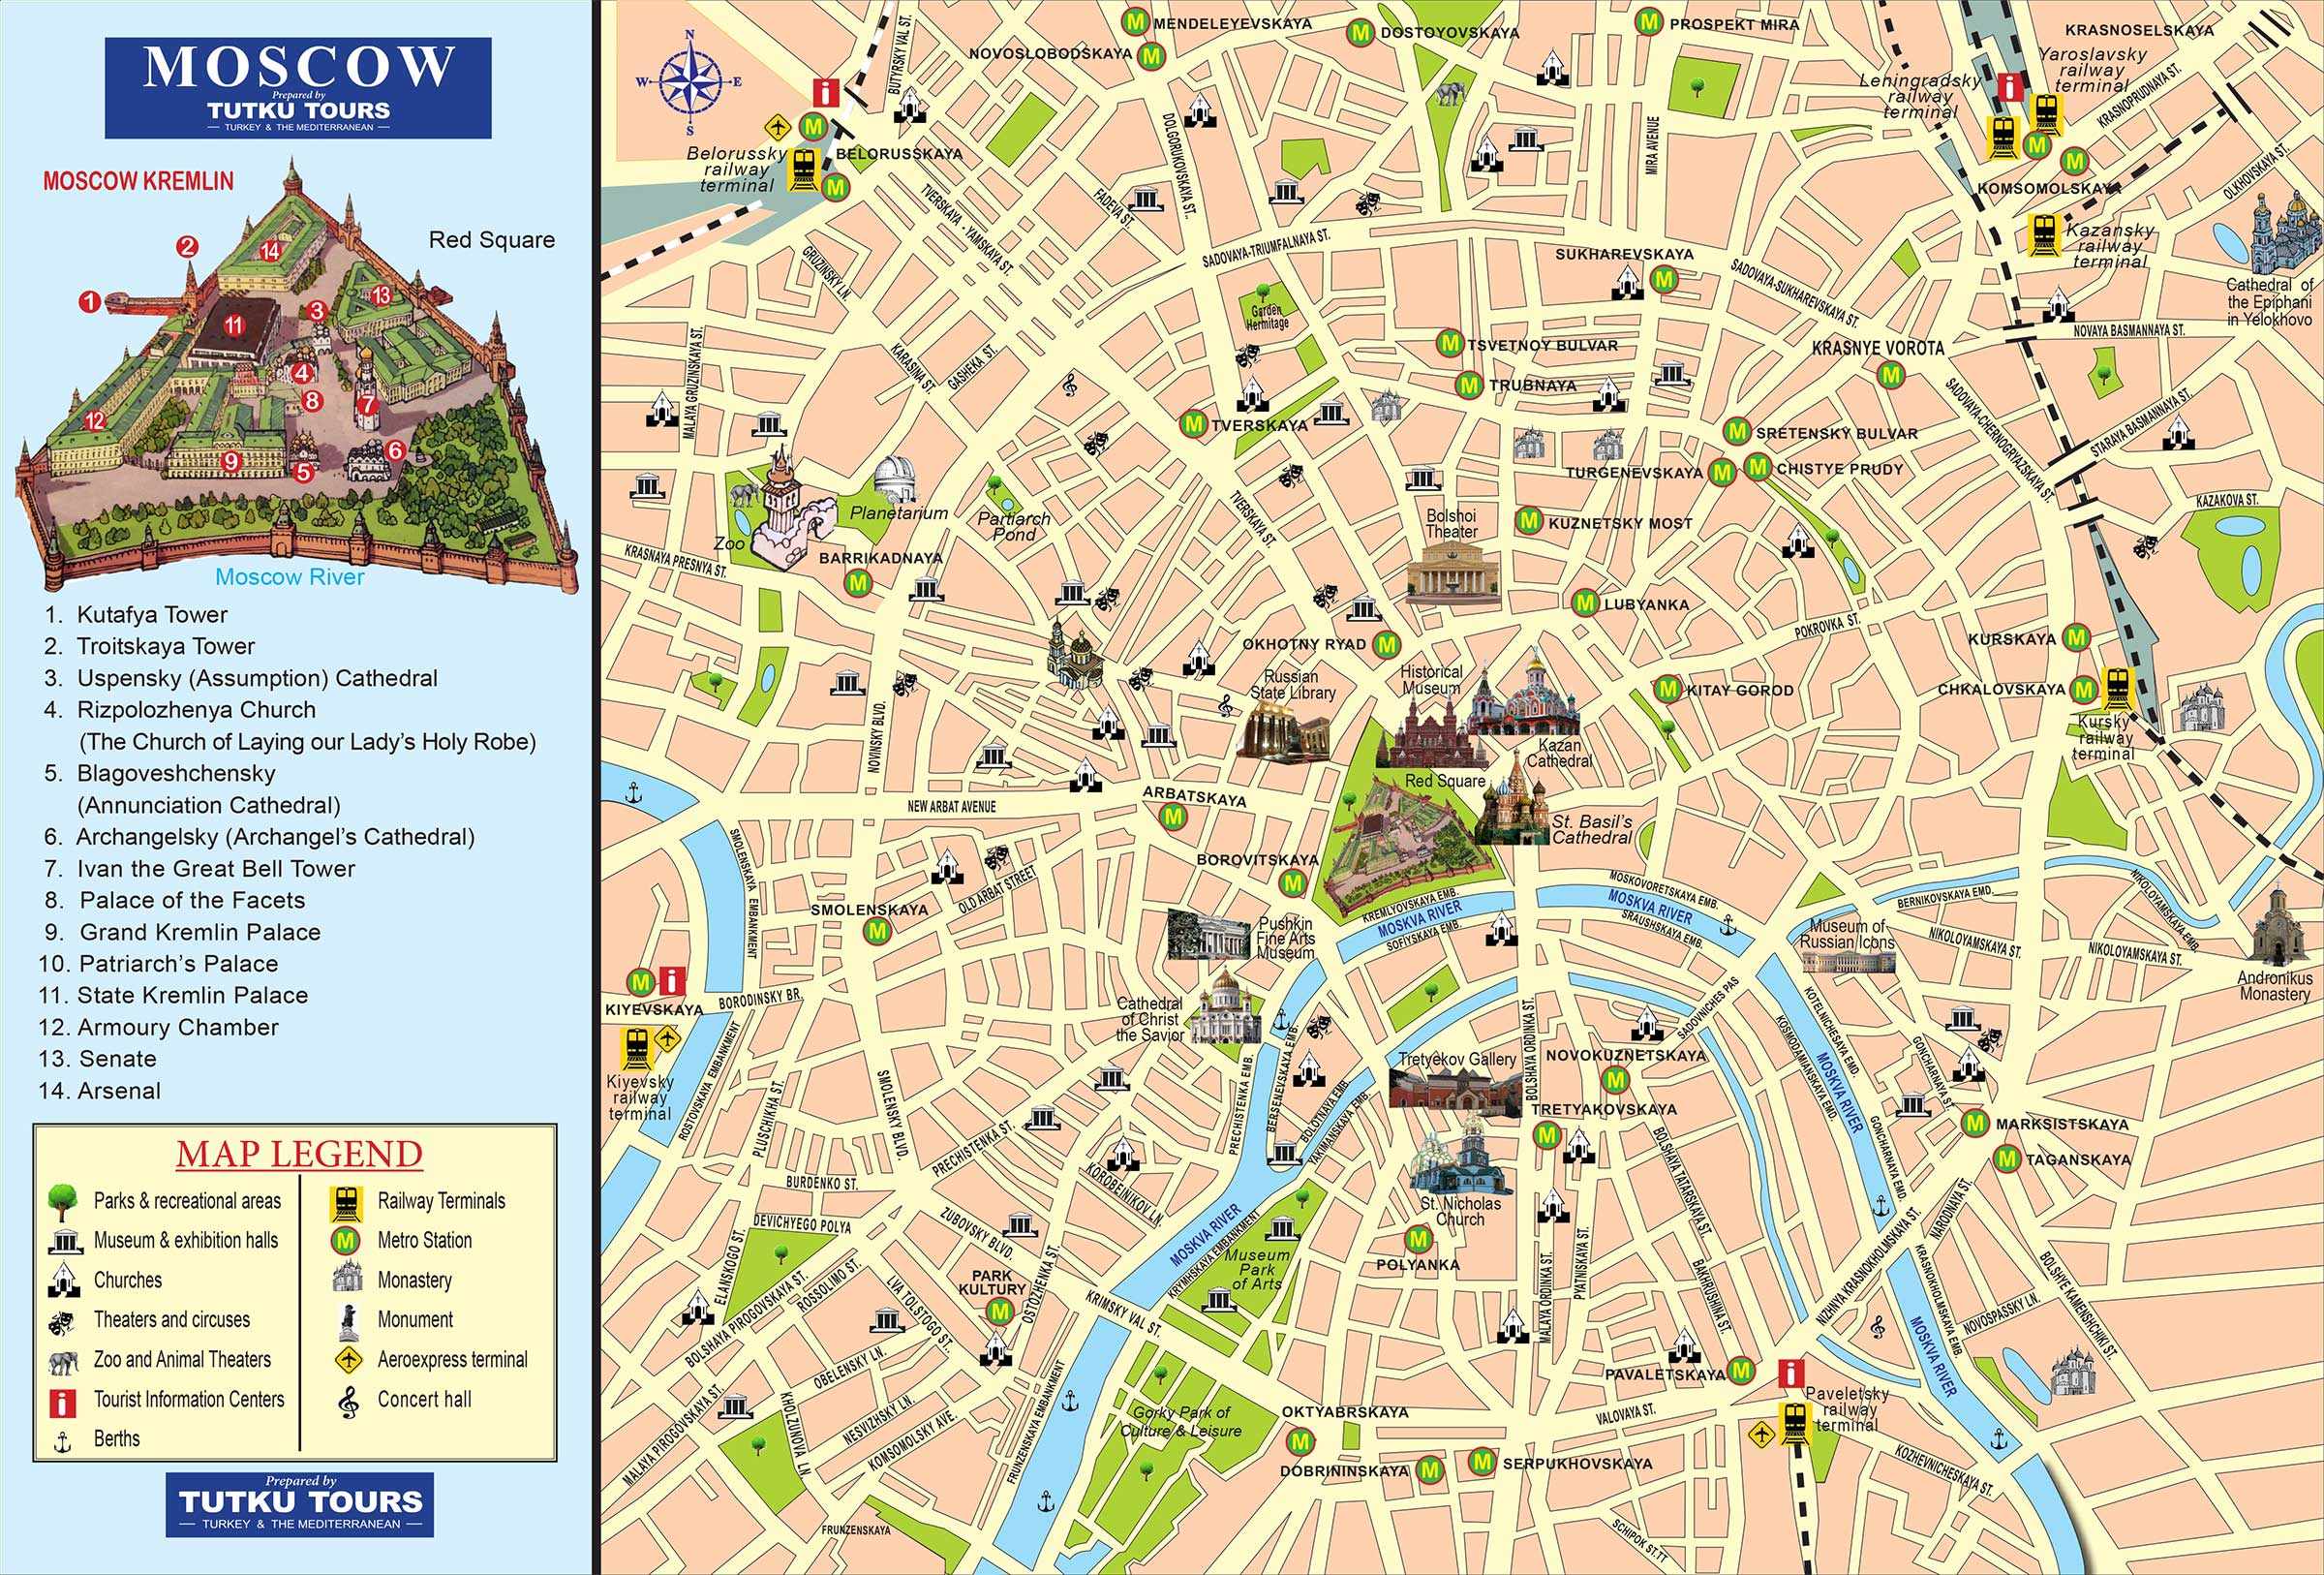 TUTKU TOURS - MOSCOW & ST. PETERSBURG MAP